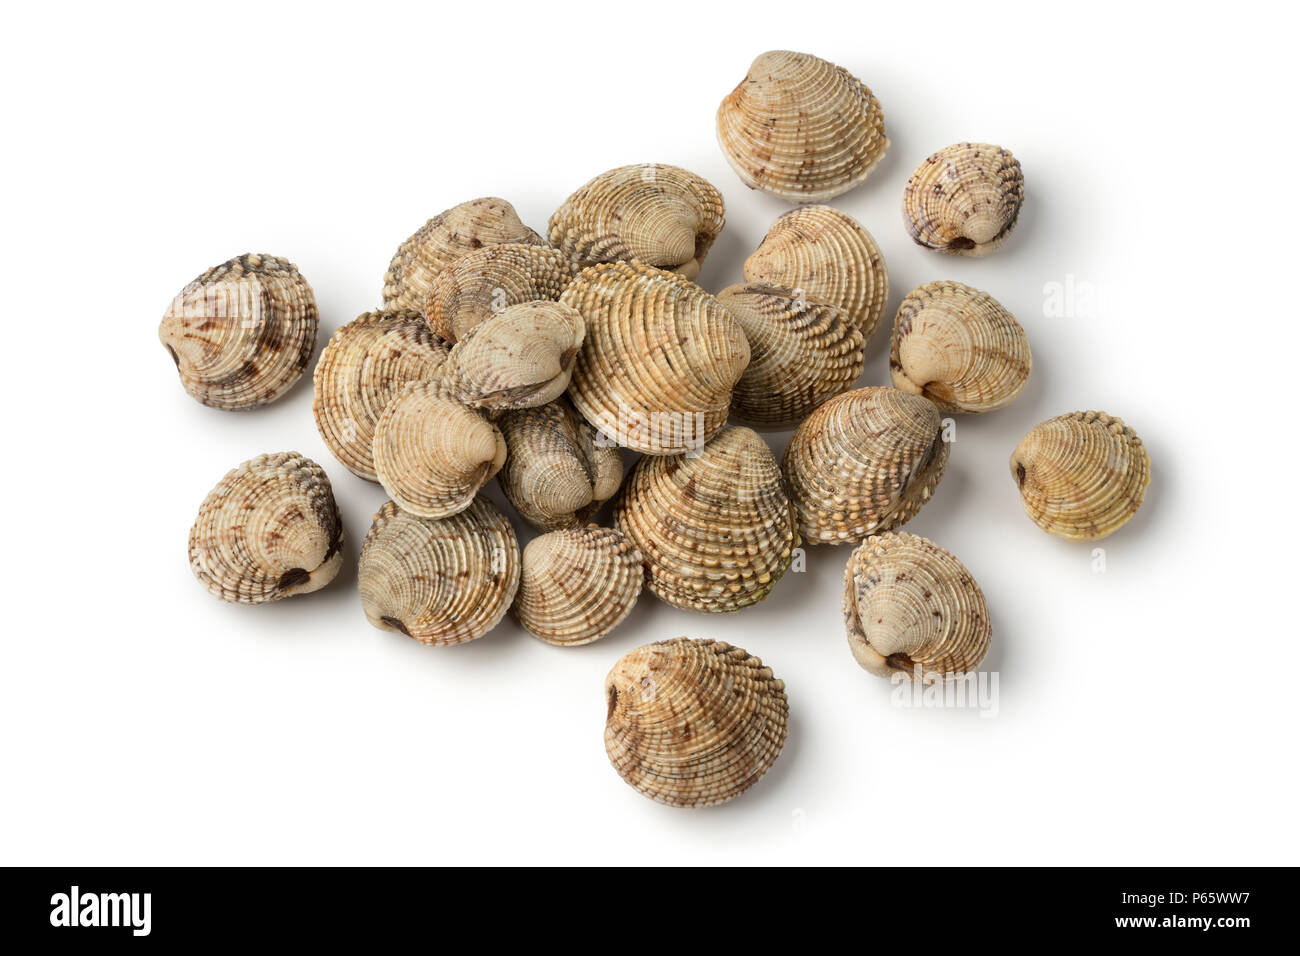 Heap of fresh raw warty venus clams isolated on white background - Stock Image